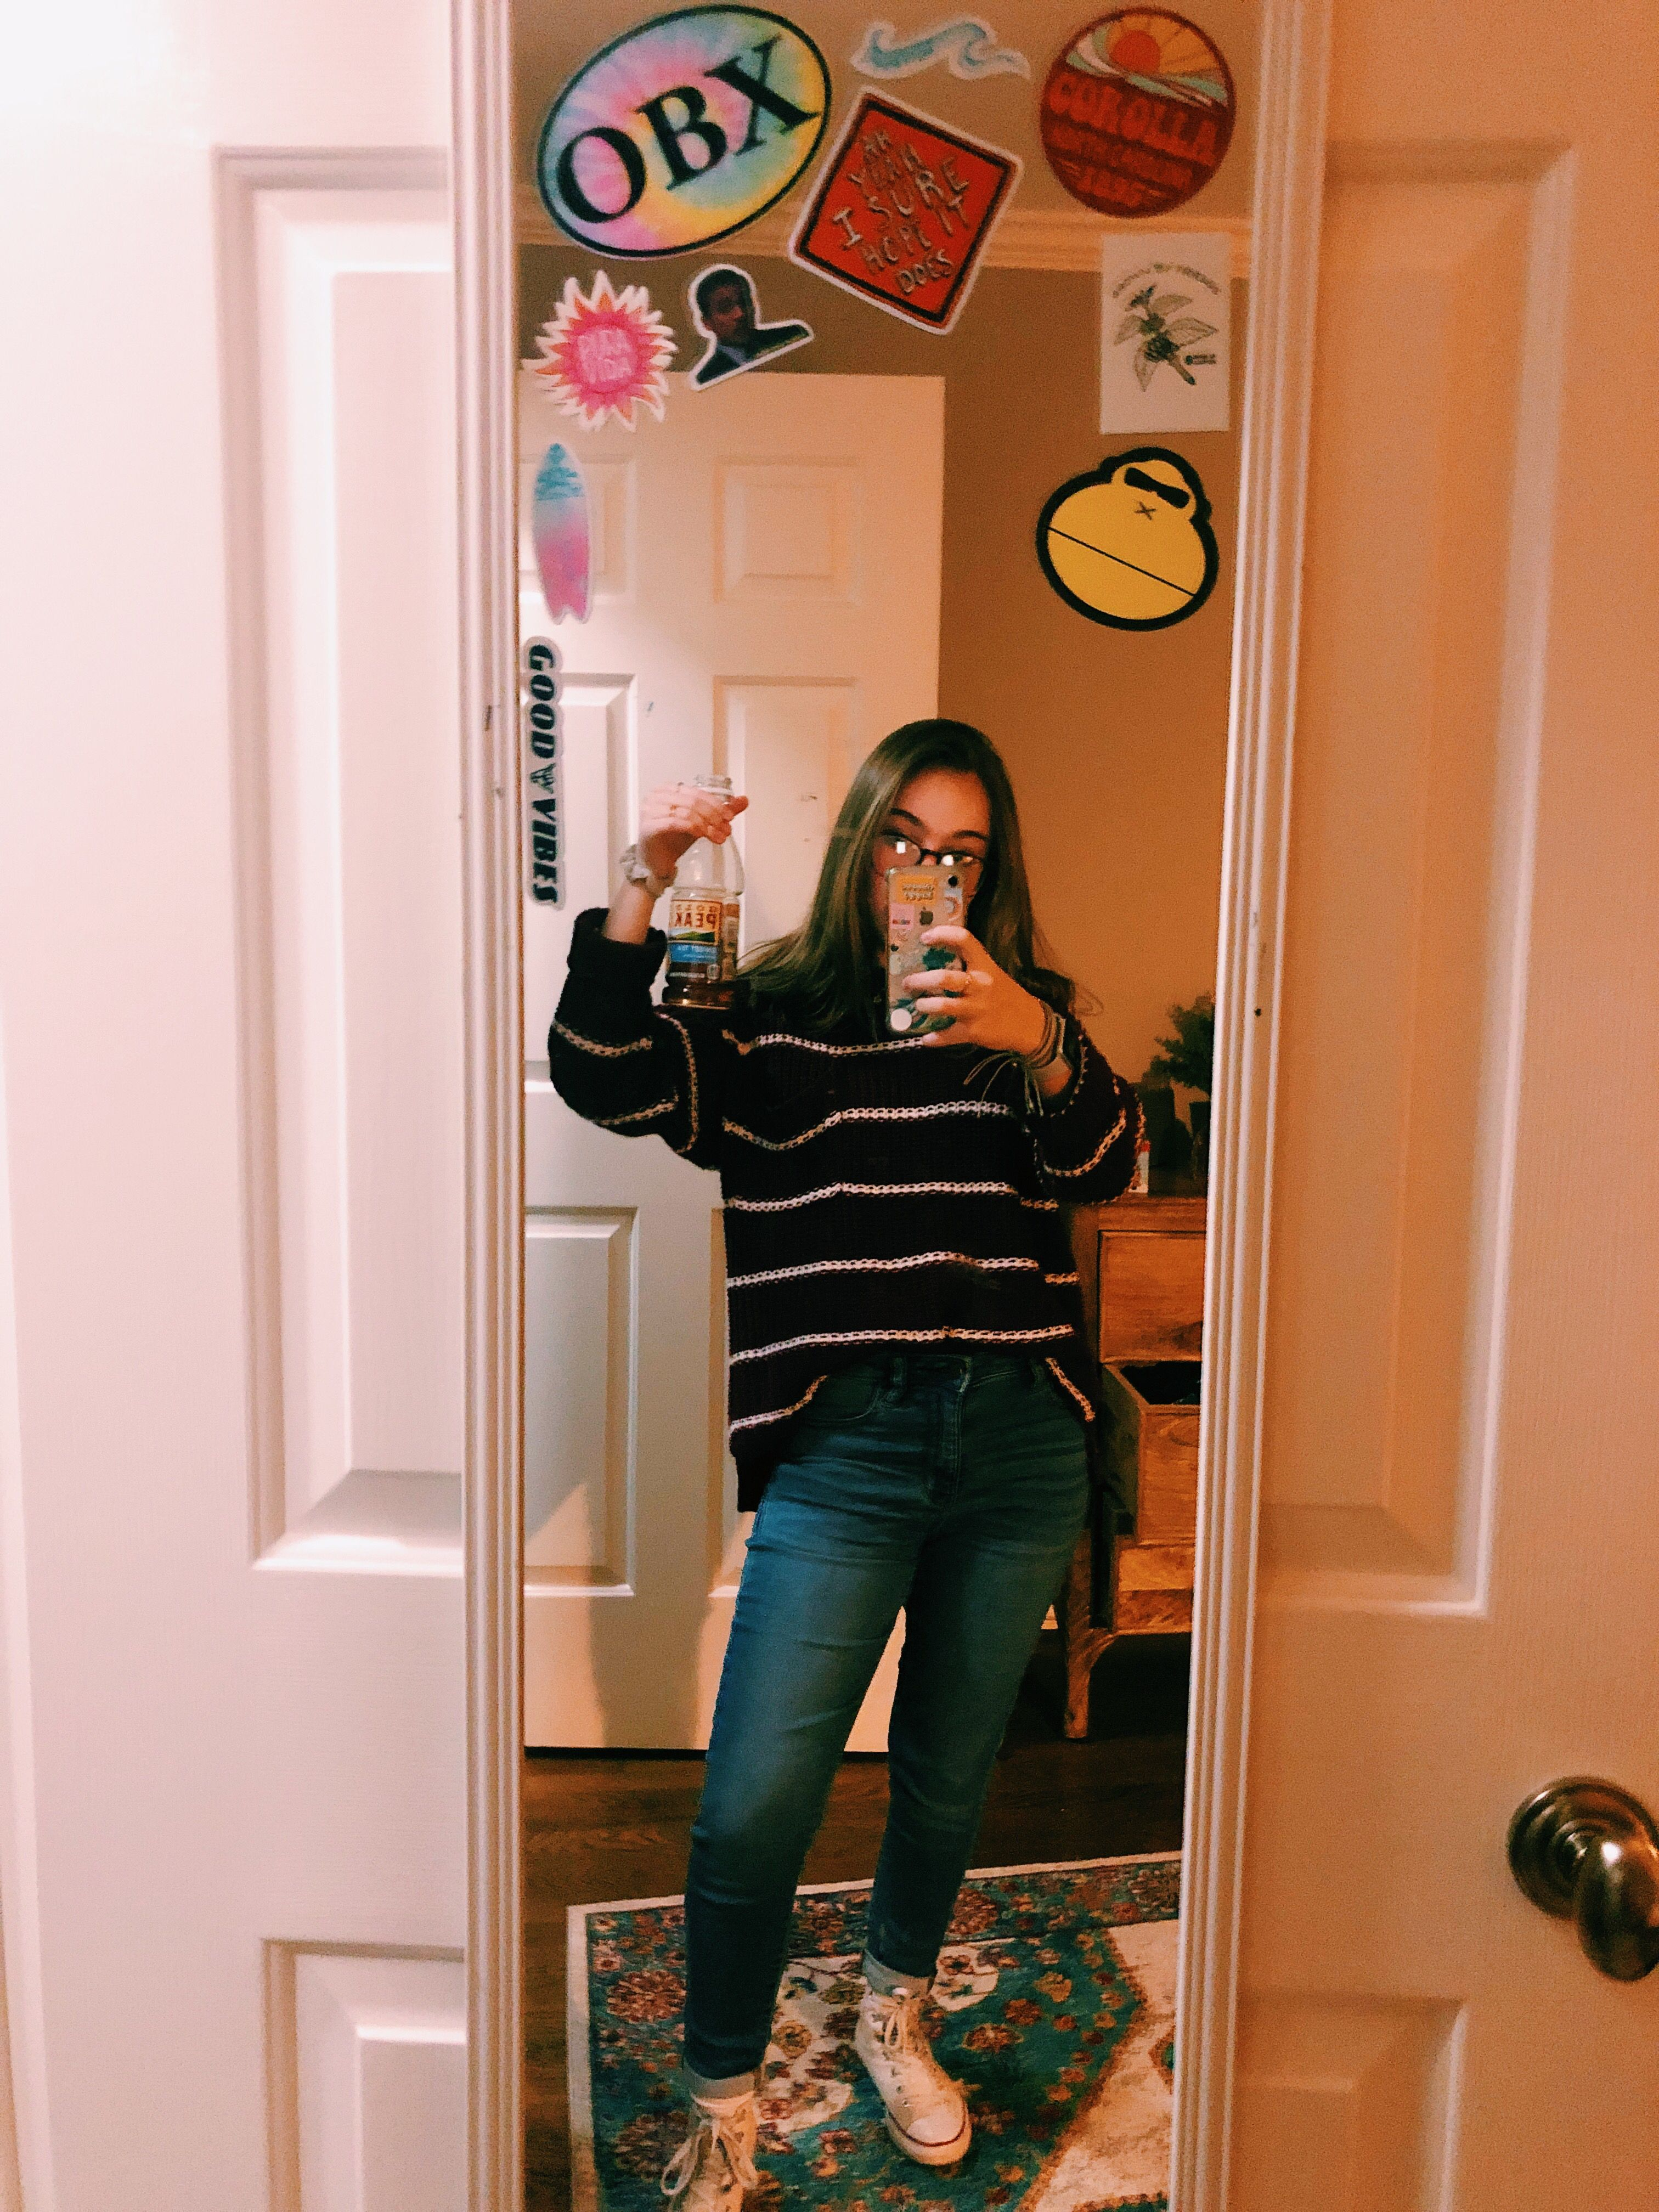 90s outfit, goodwill outfit, vintage outfit, cute outfit